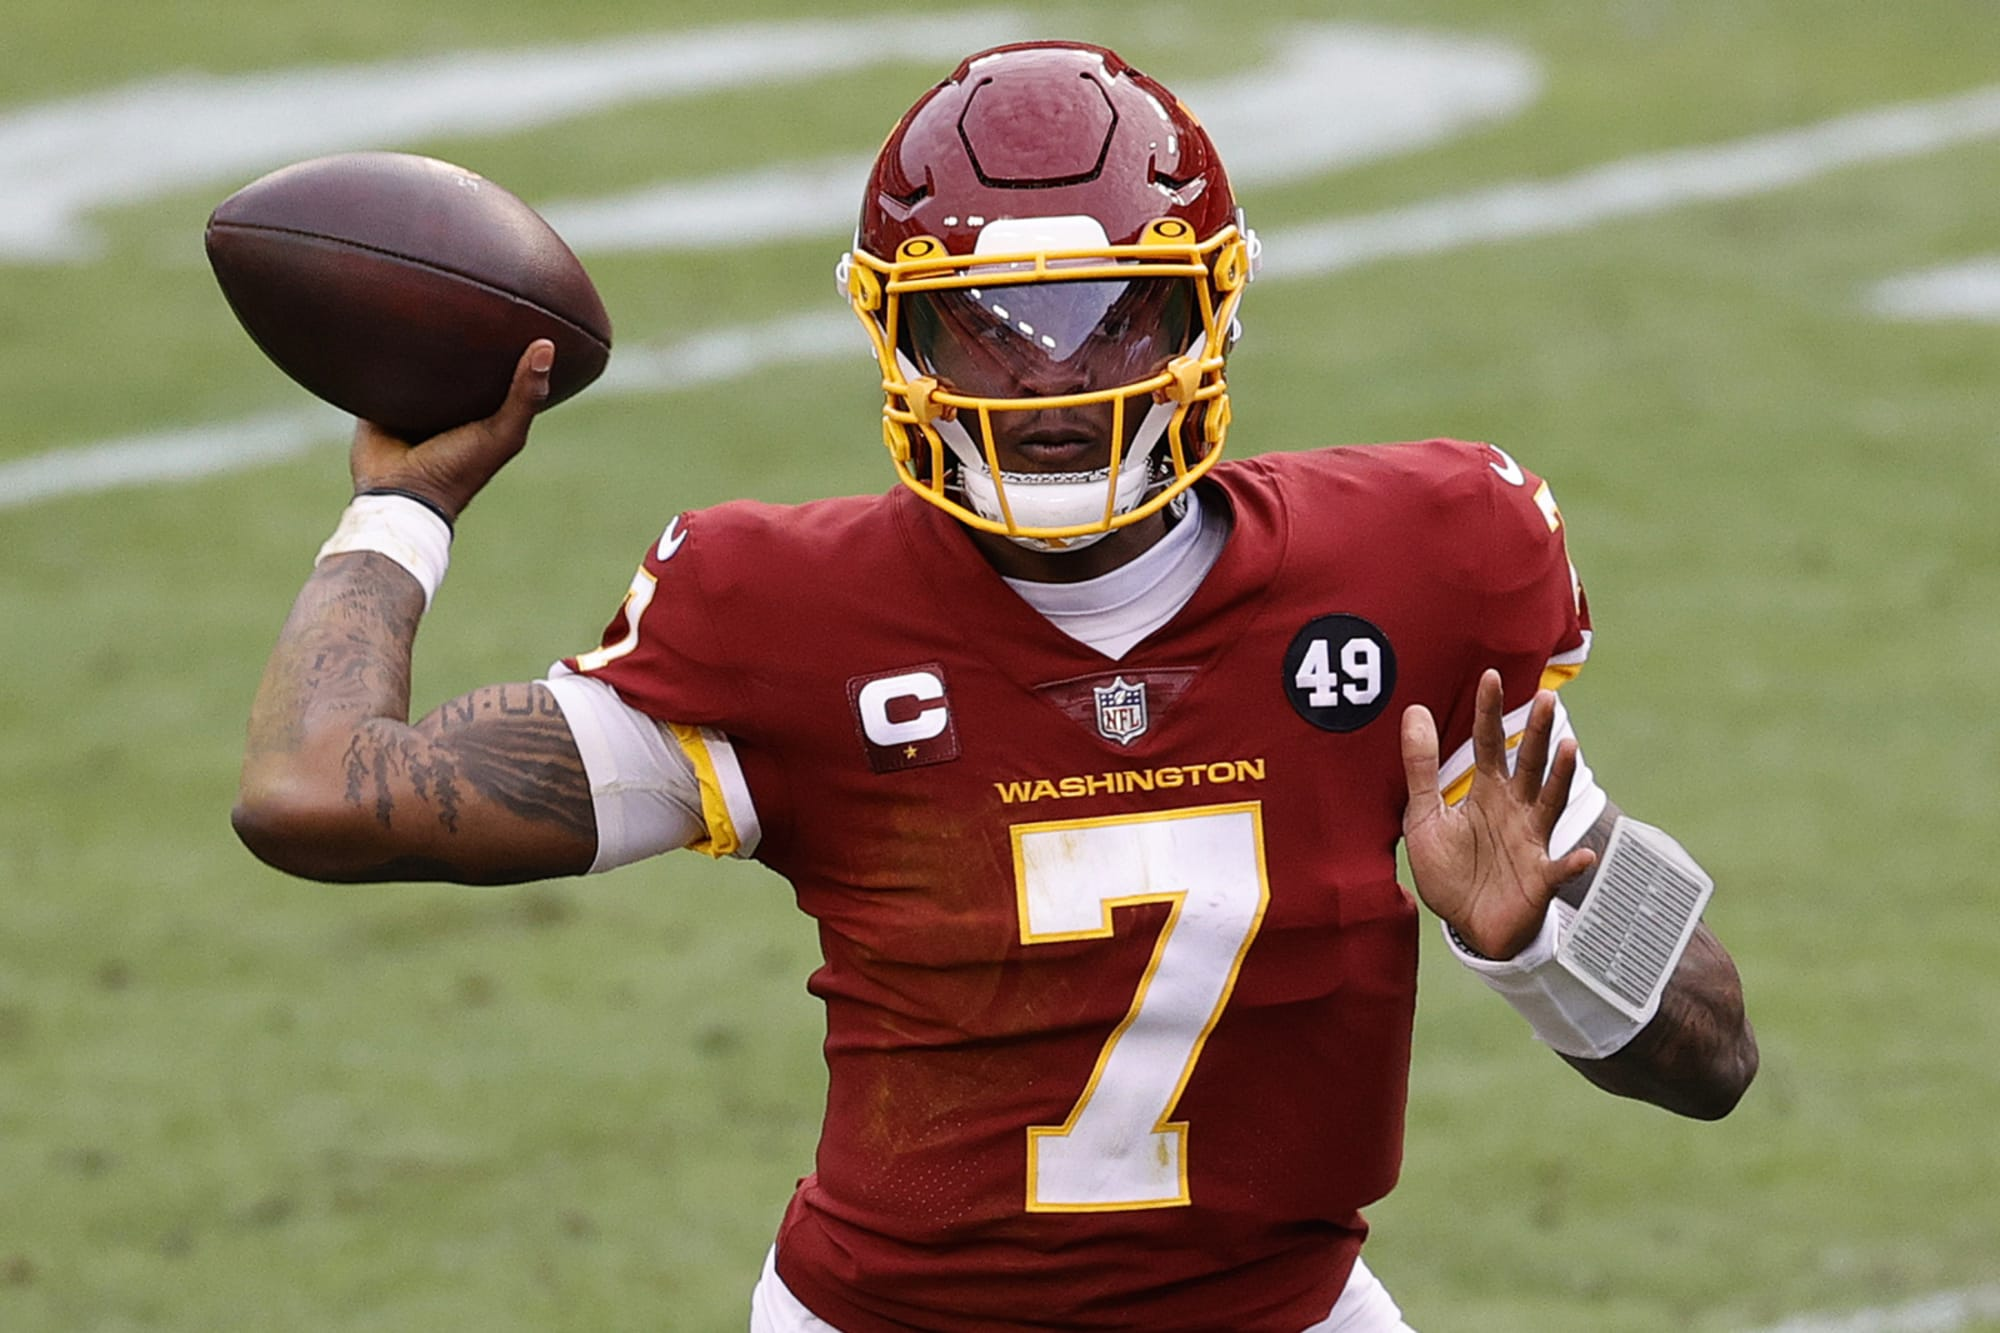 Dwayne Haskins won't be the answer for Steelers after Ben Roethlisberger